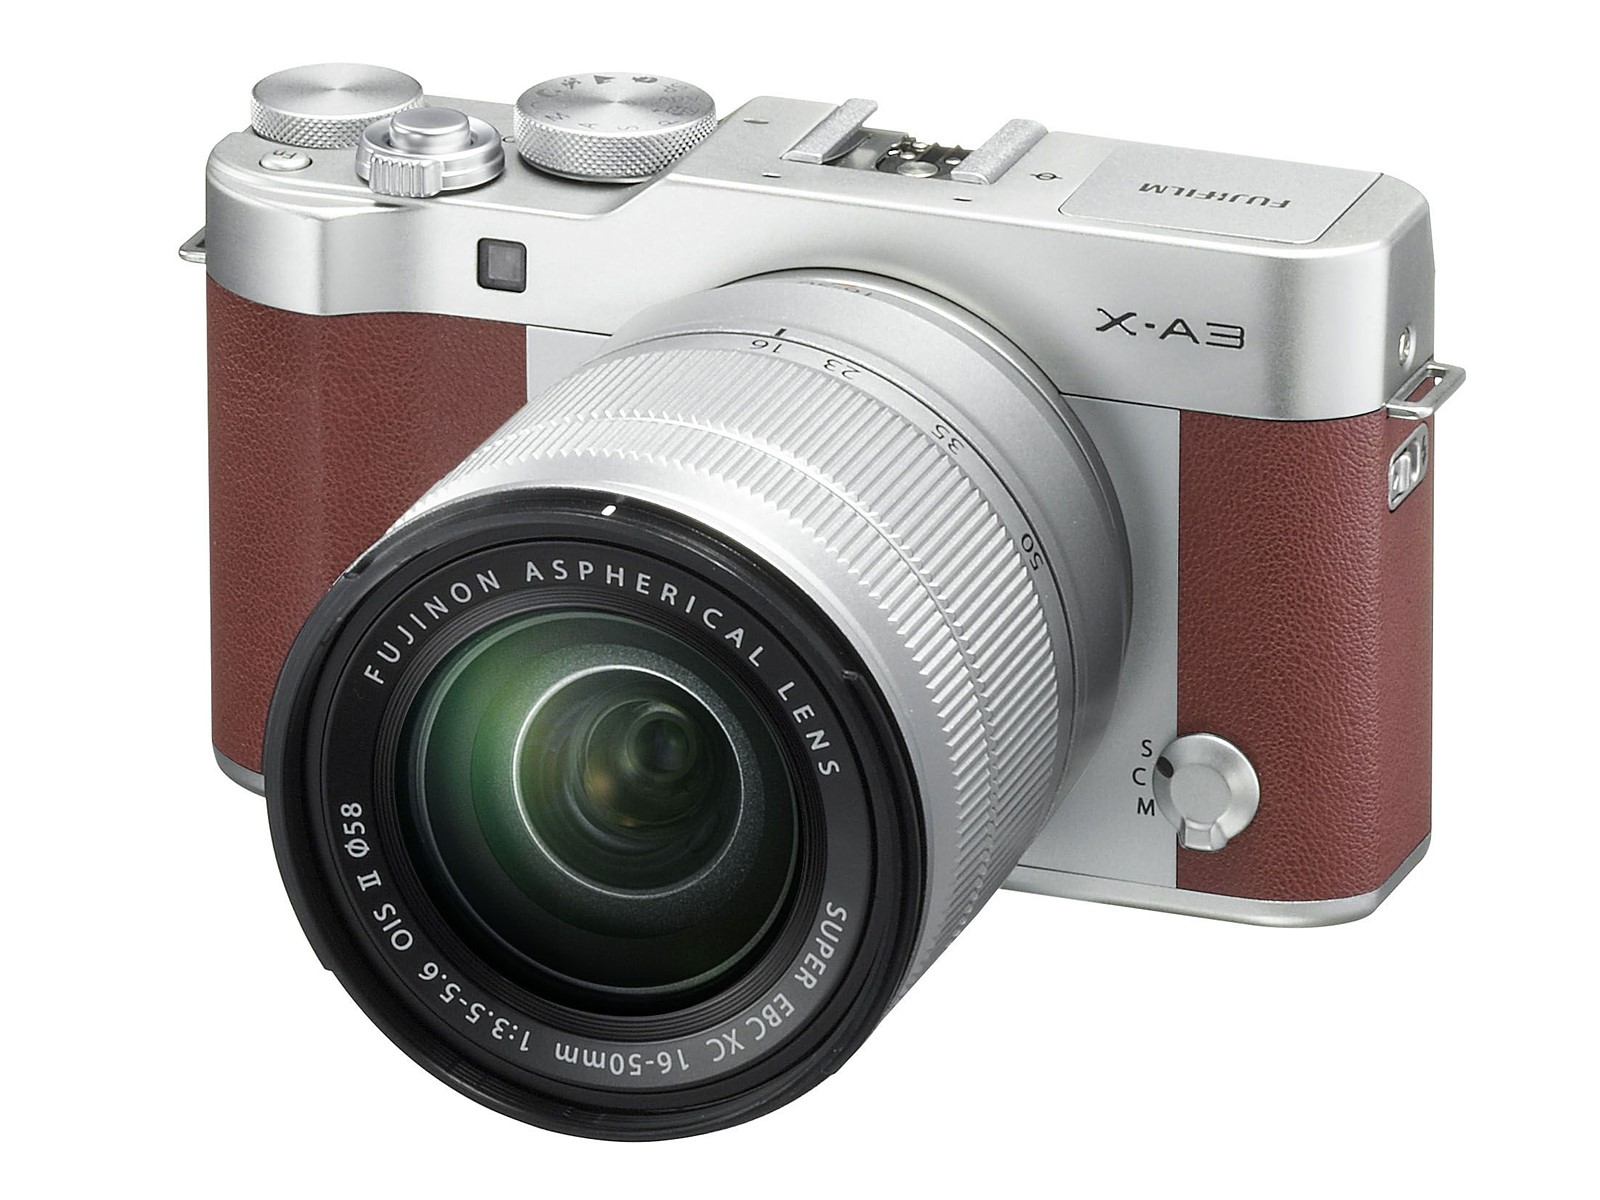 Fujifilm X-A3 Firmware Ver. 2.00 Now Available for Download